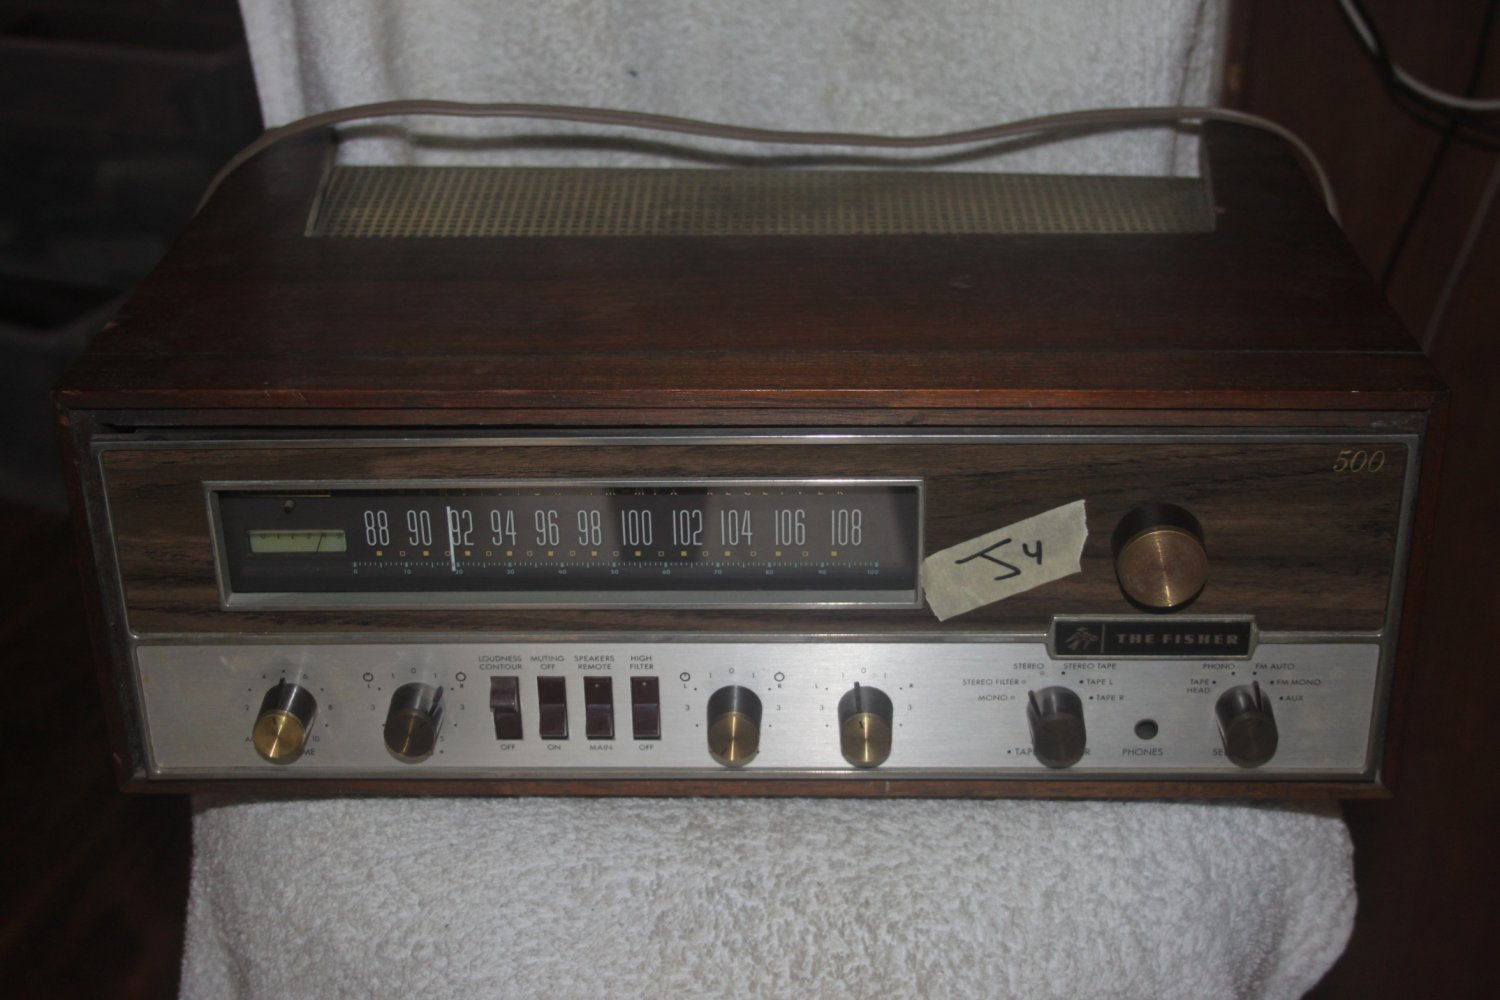 THE FISHER 500-T VINTAGE AUDIOPHILE HIFI RECEIVER POWERS ON AS IS 05/16